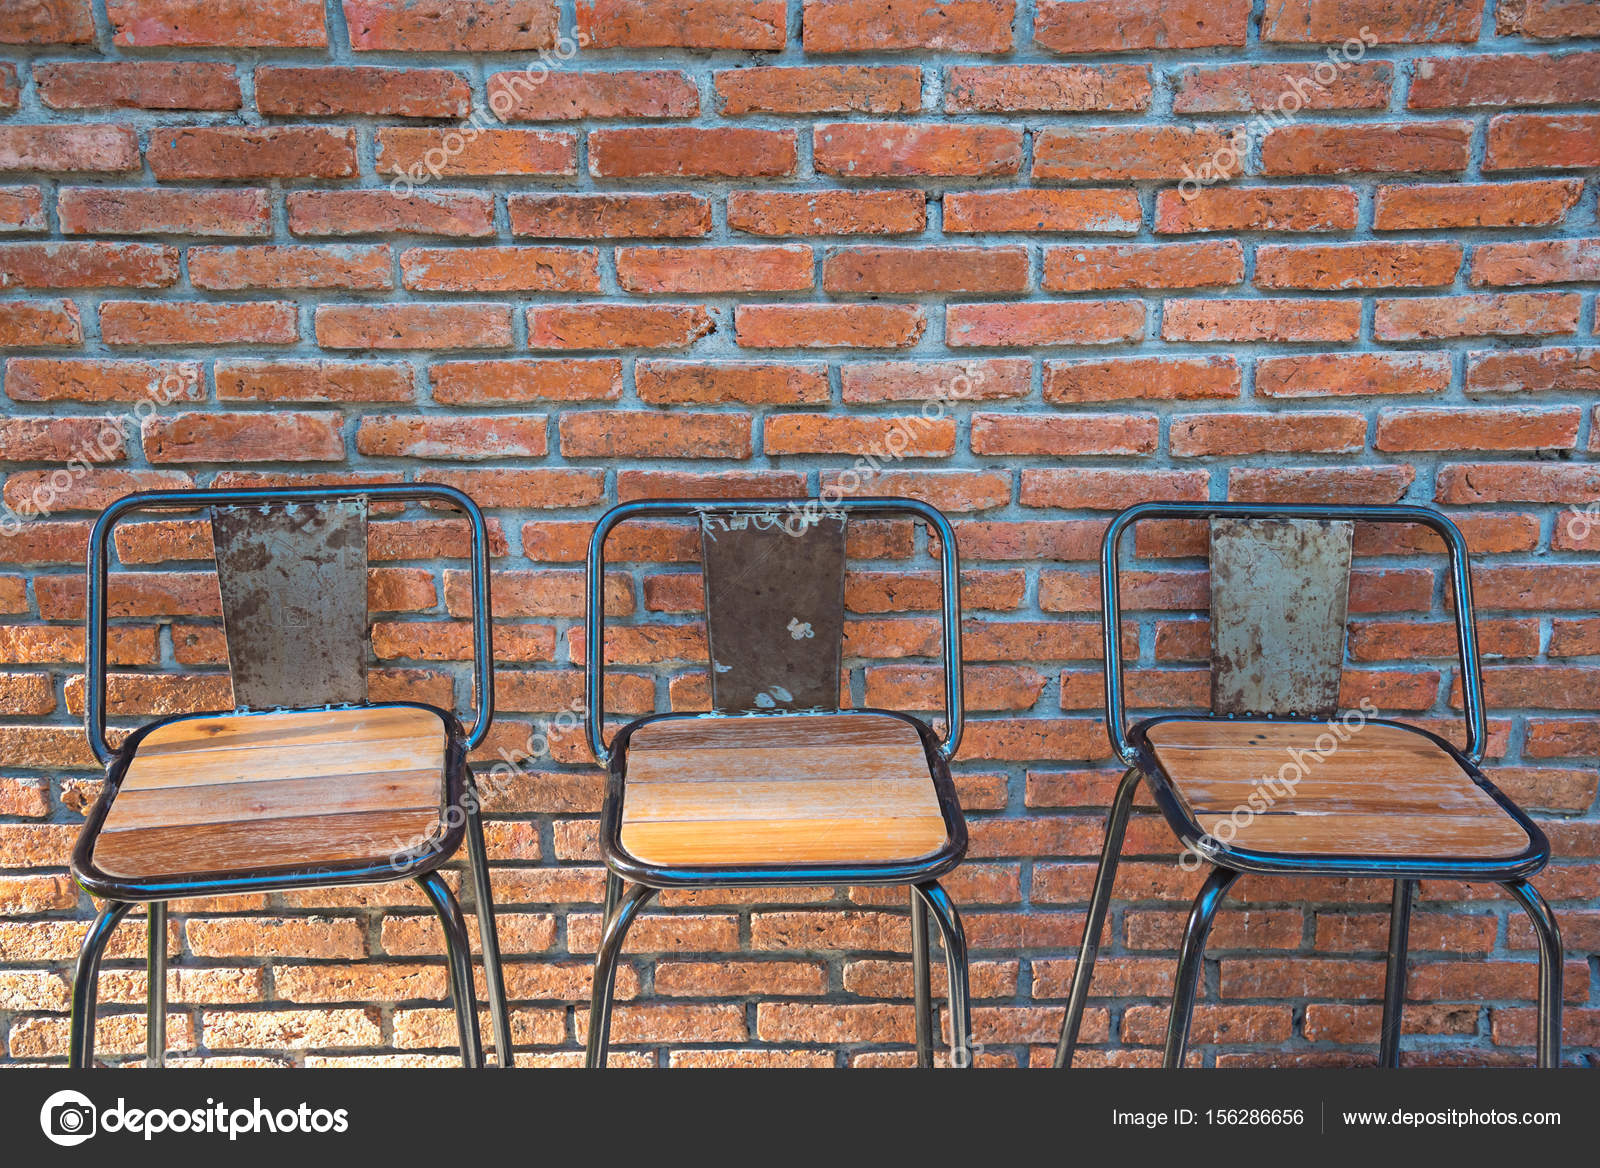 Bar With Brick Wall Bar Counter On Red Brick Wall Background Stock Photo C Kwanchaidp 156286656